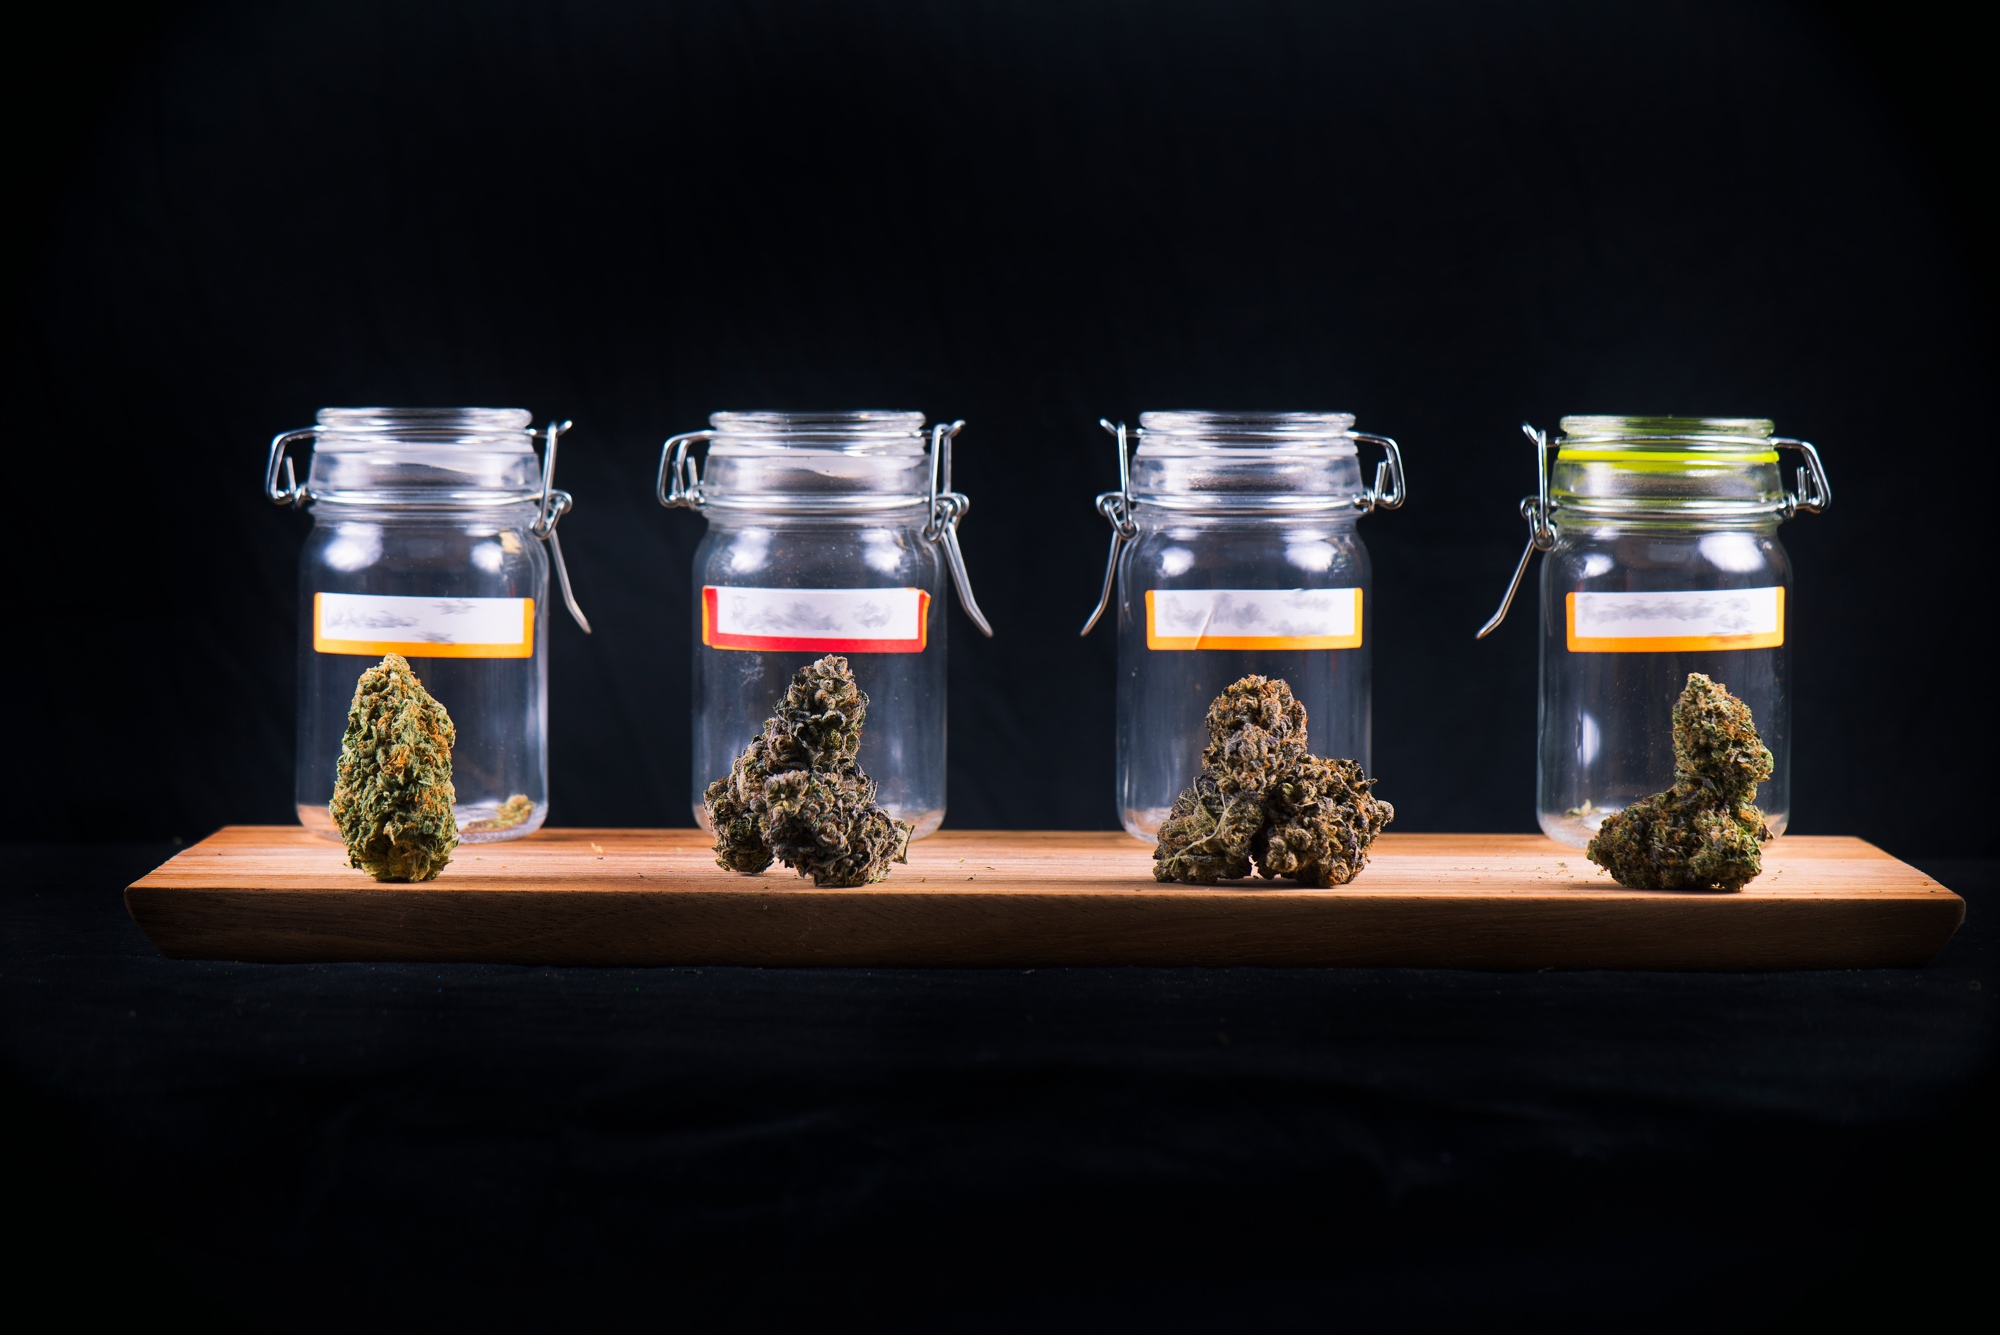 Assorted cannabis bud strains and glass jars - medical marijuana dispensary concept.jpg